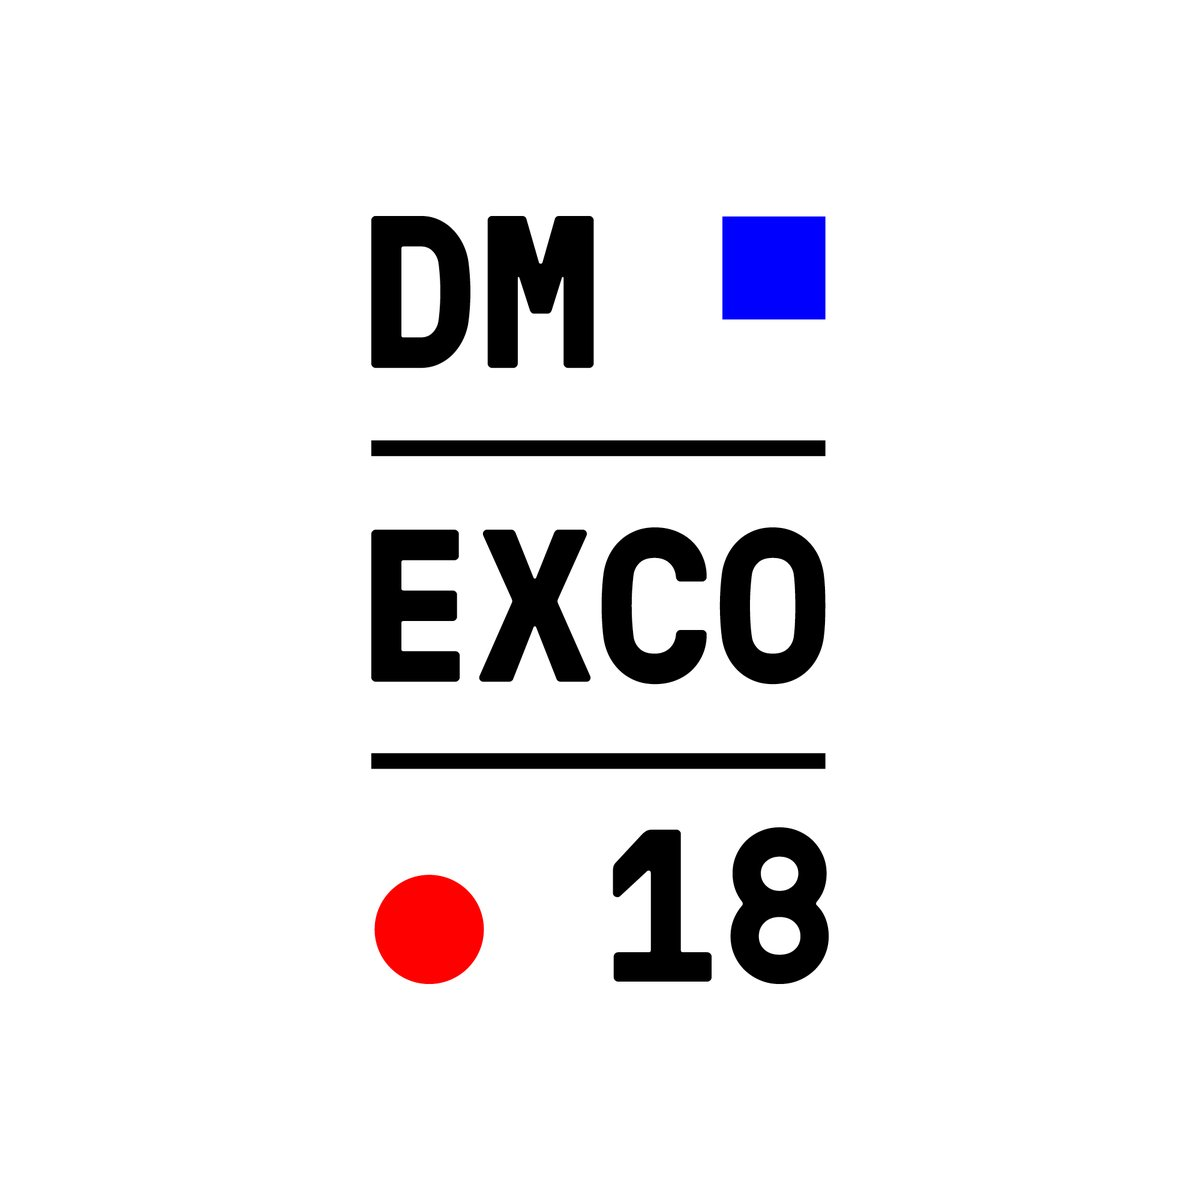 Come say meet us at DMEXCO in September!